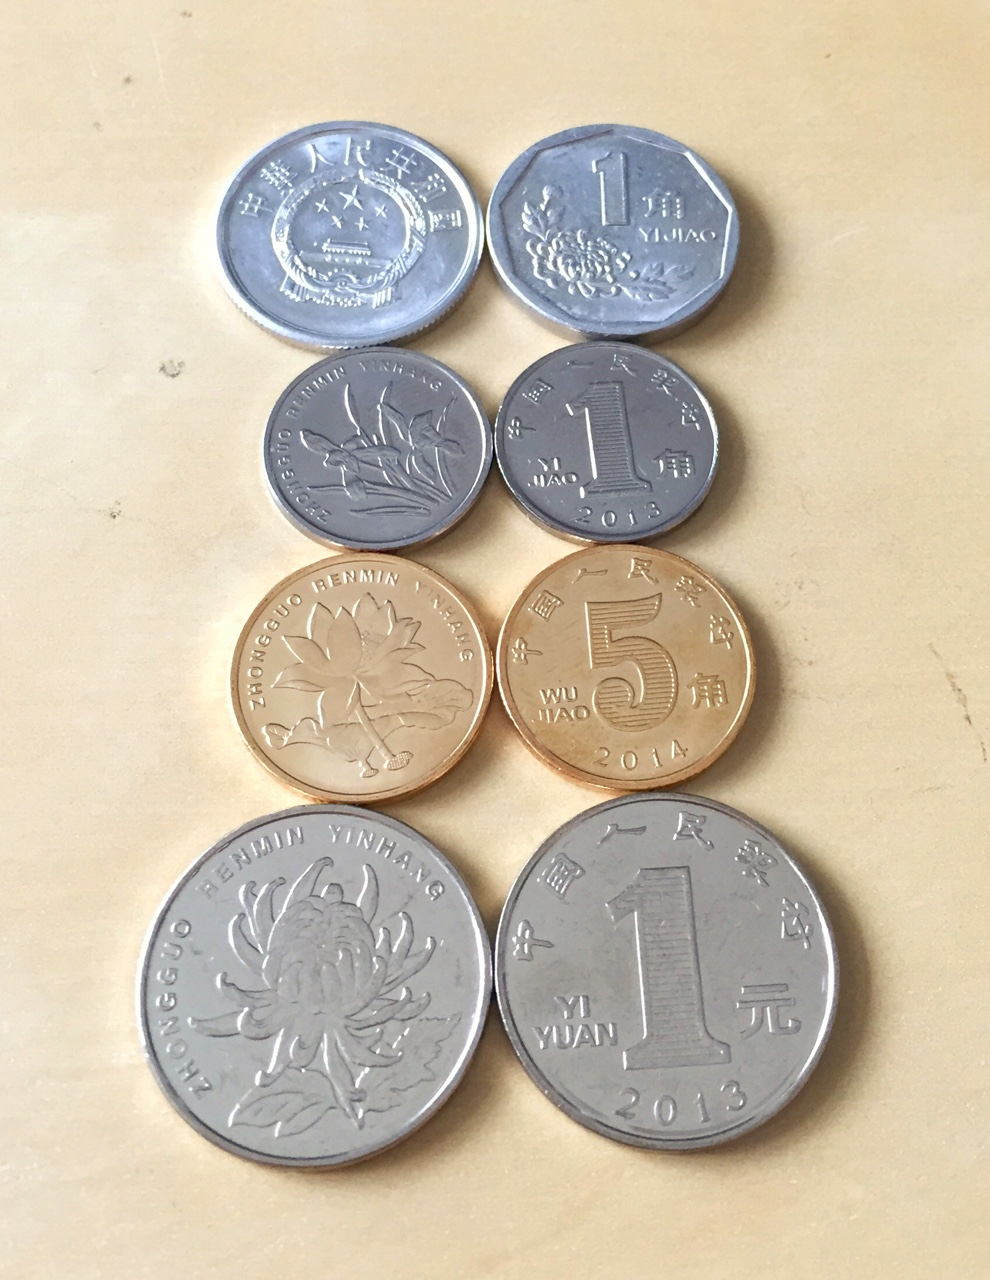 The coins of China. First coins are still 1 cent, but an older version and also made of a different material, feels like aluminum. Coins are 10 cents, 50 cents, and 1 Rmb. Although they are marked as 1 jiao, 5 jiao, and 1 yuan. The flower also seems to grow based on the value of the coin.